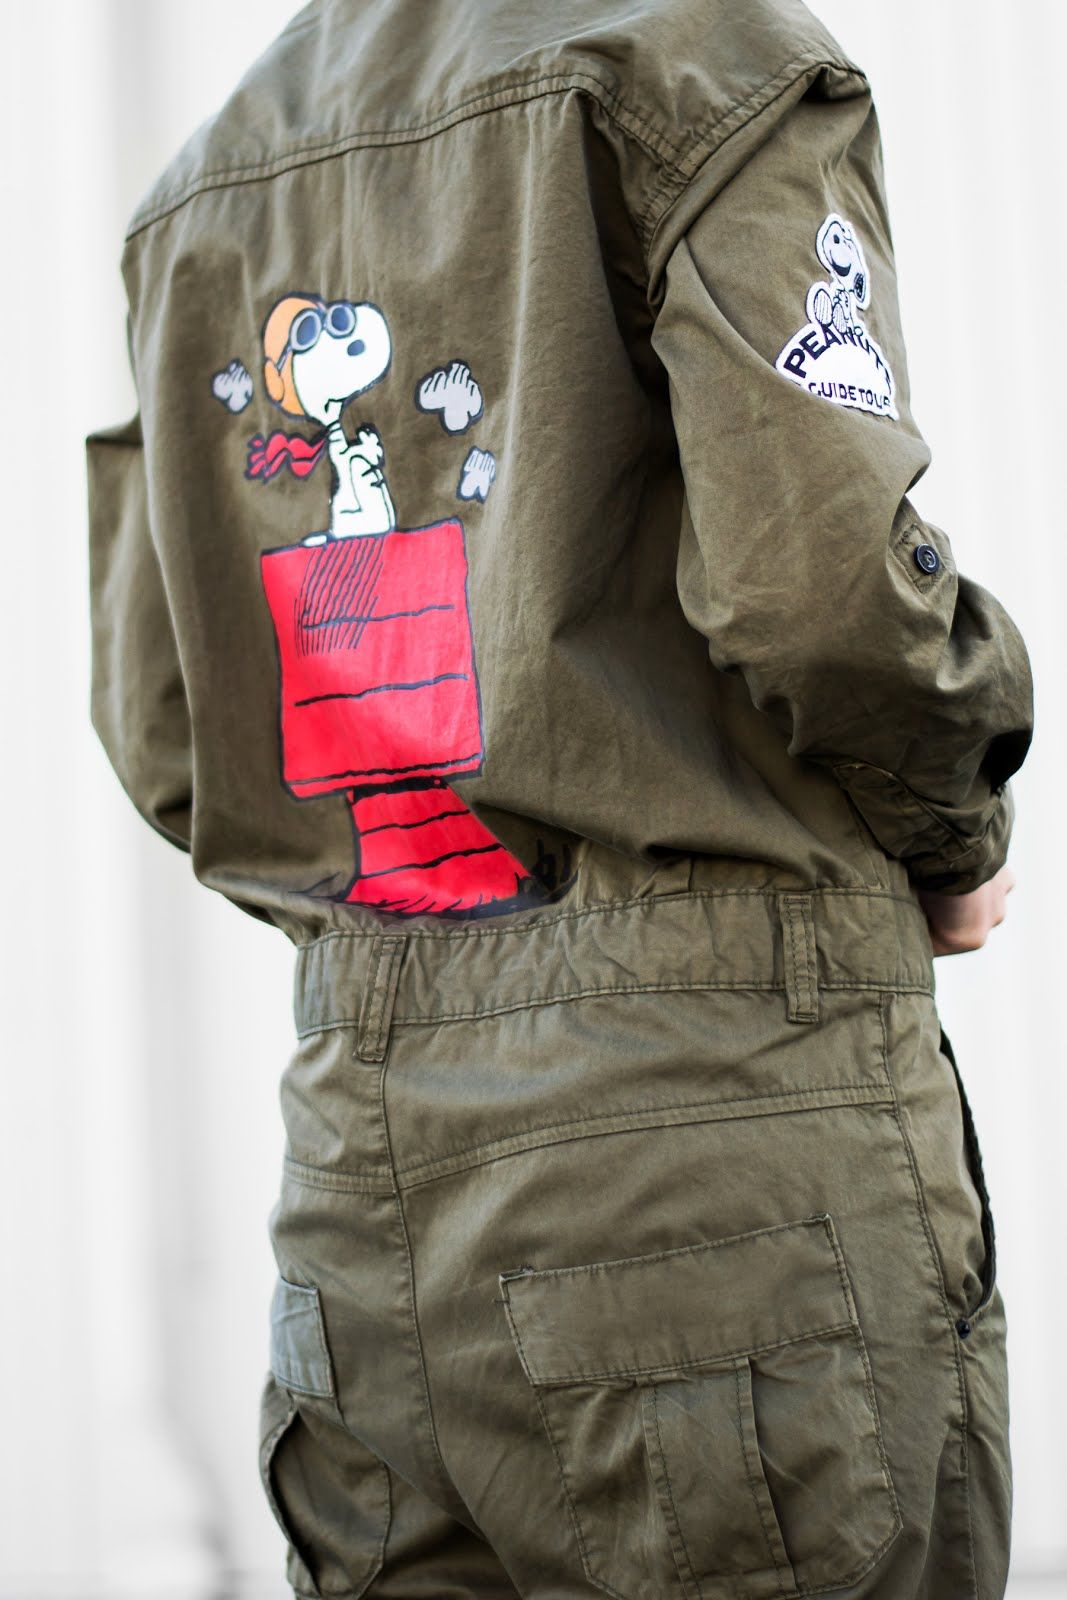 Peanuts boilersuit, jumpsuit, snoopy, zara trf, sale, khaki